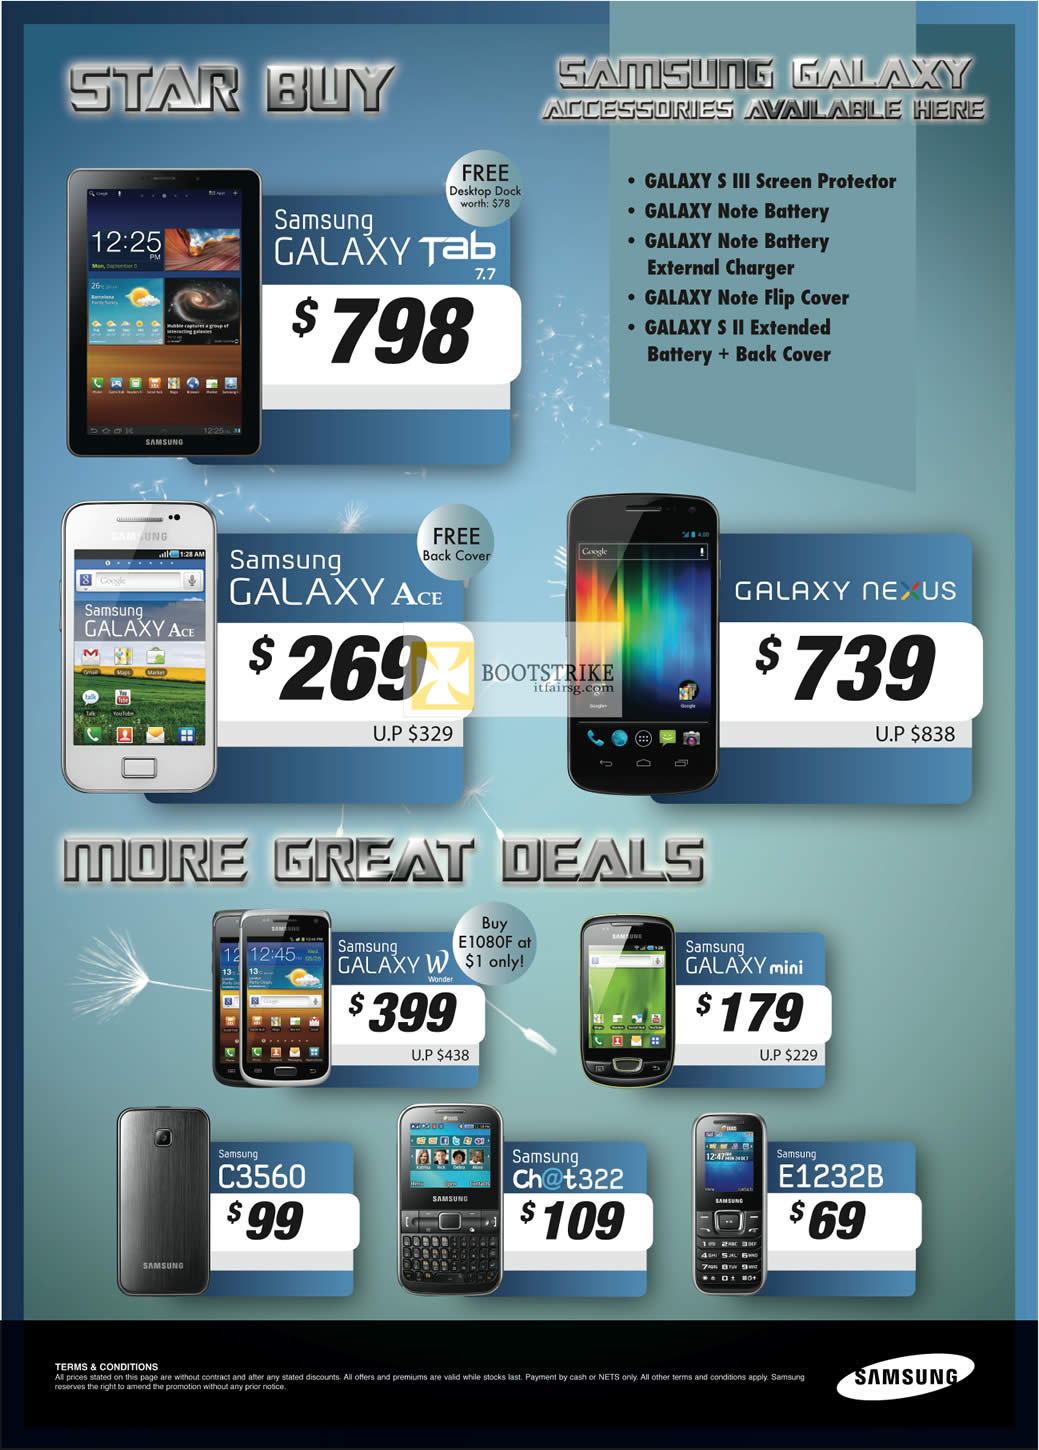 PC SHOW 2012 price list image brochure of Samsung Smartphones Galaxy Tab 7.7, Galaxy Ace, Galaxy Nexus, W, Mini, C3560, Chat 322, E1232B